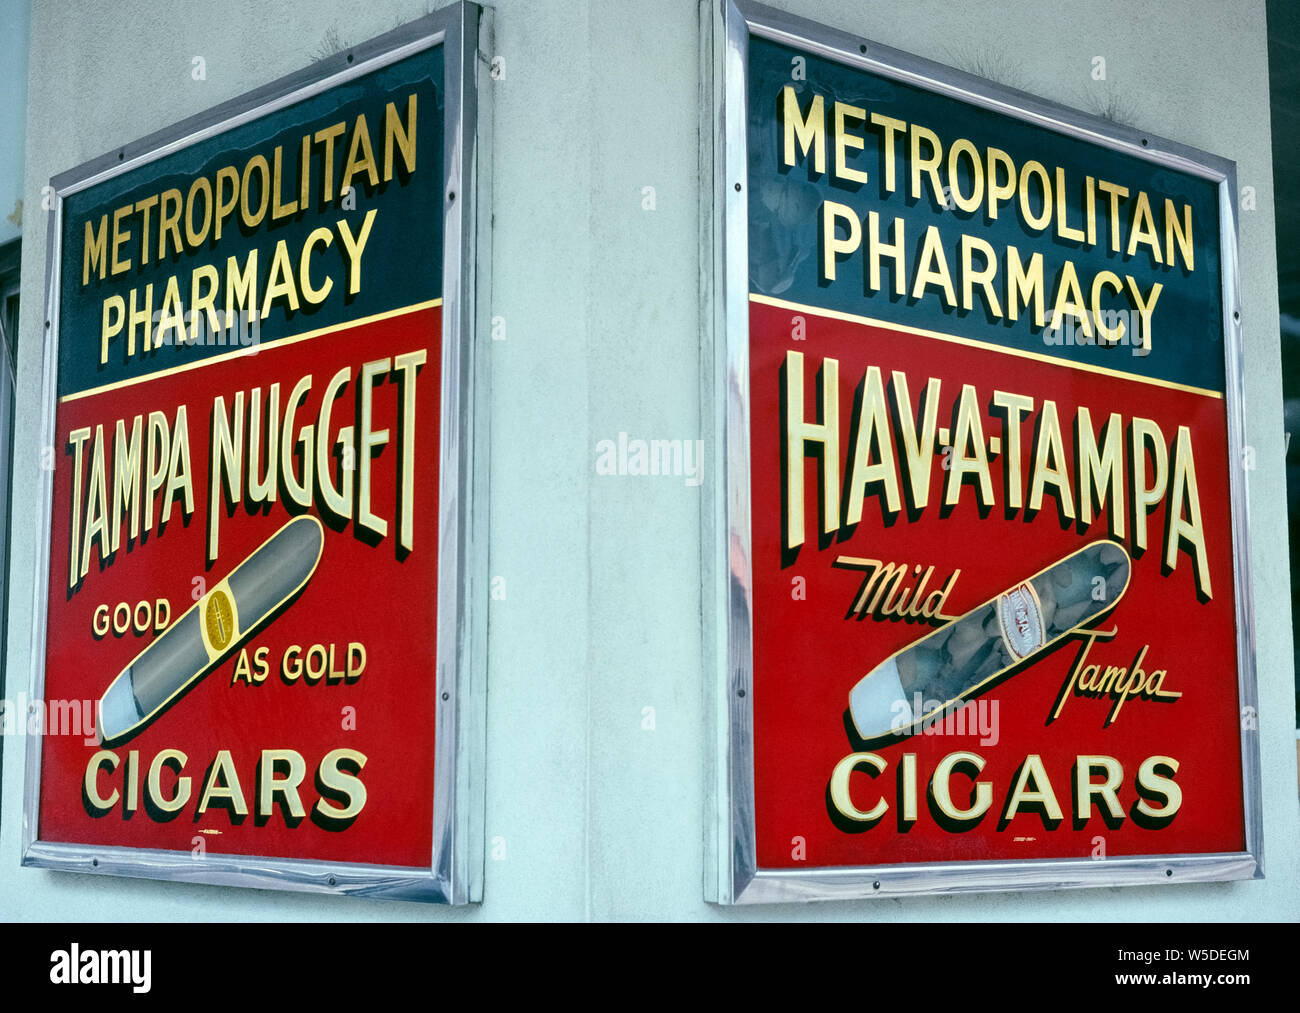 Two vintage storefront signs advertise Tampa cigars that were made in Ybor City, a National Historic Landmark District in Tampa, Florida, USA, once known as the cigar capital of the world. Tampa Nugget and Hav-A-Tampa cigars were manufactured there by the Hav-A-Tampa Cigar Company from 1902 until 2009 when production was moved to Puerto Rico. Currently Hav-A-Tampa is known for its top-selling slender cigars with wood tips, named Jewels, which are offered in flavors called Original, Sweet, and Vanilla. Historical photograph. Stock Photo